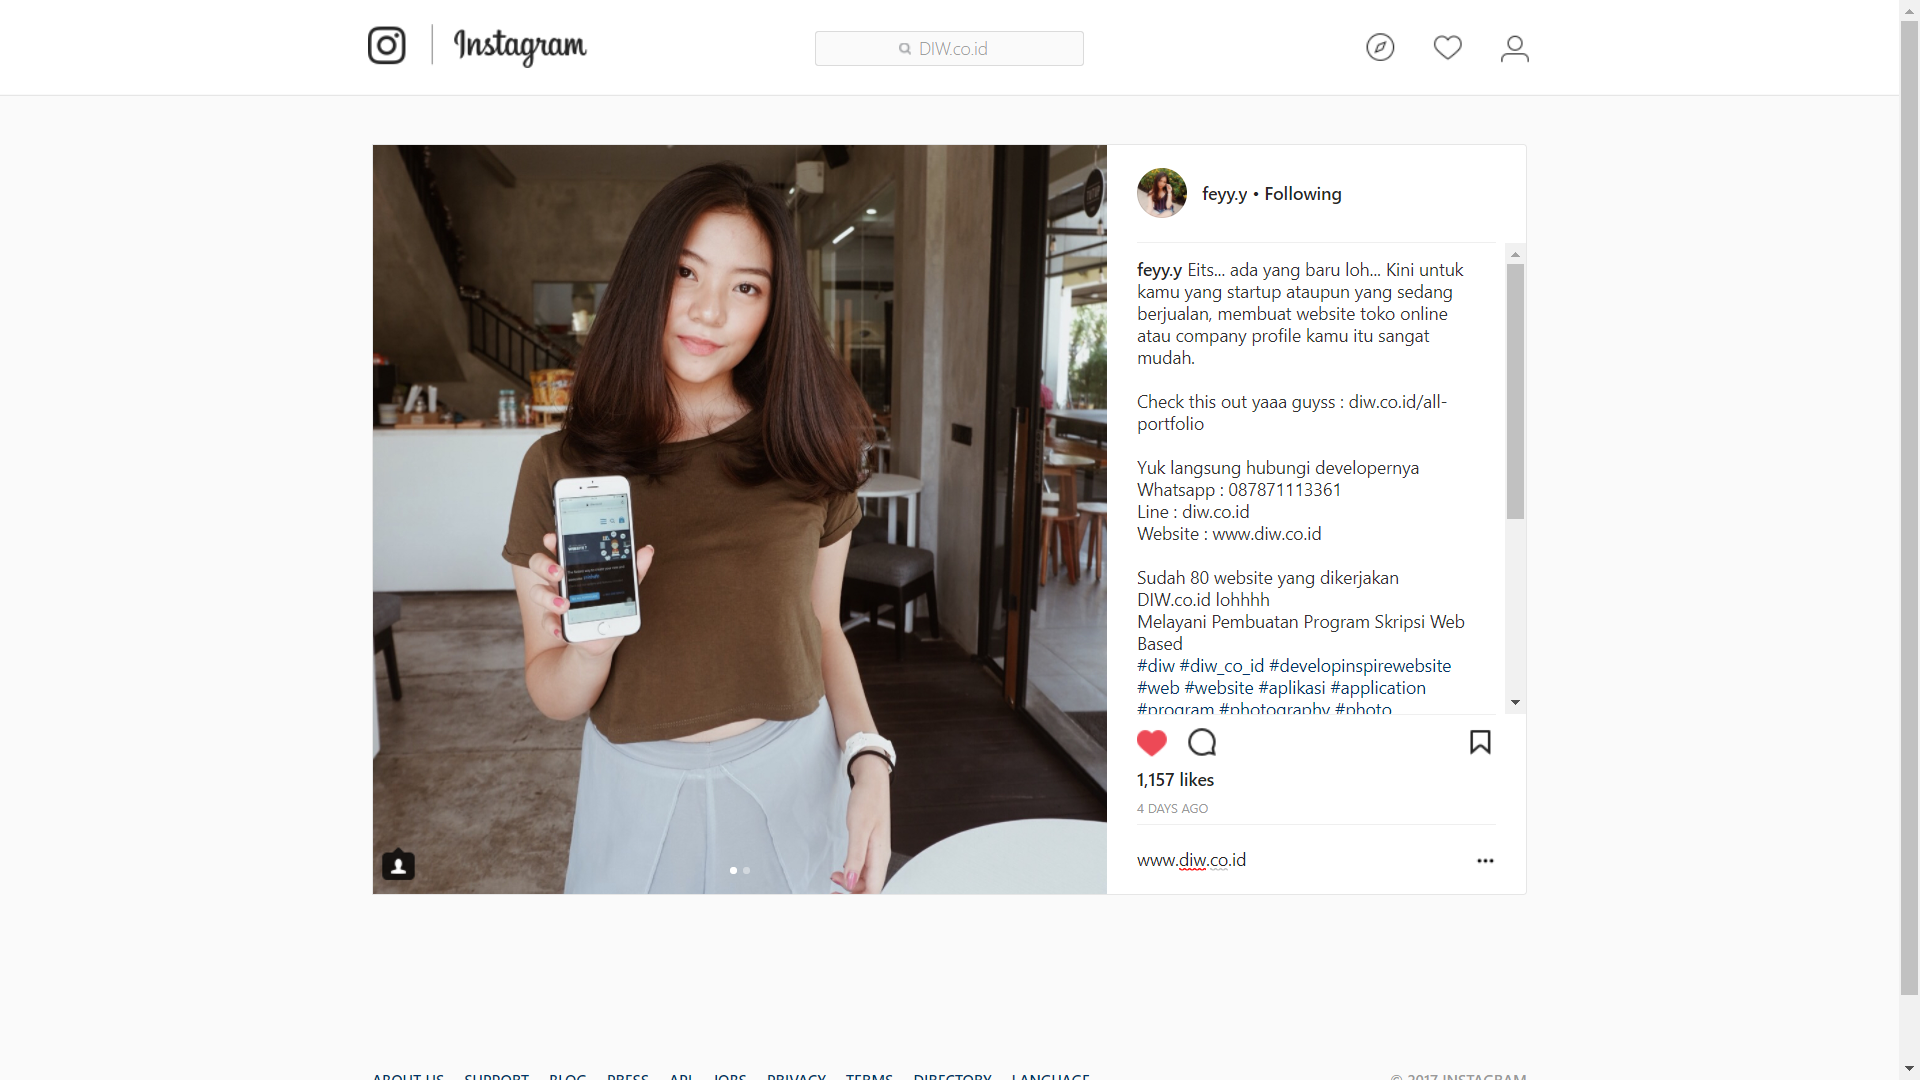 Endorsement Liena Meilianti - DIW.co.id - Go Online Without Think Code